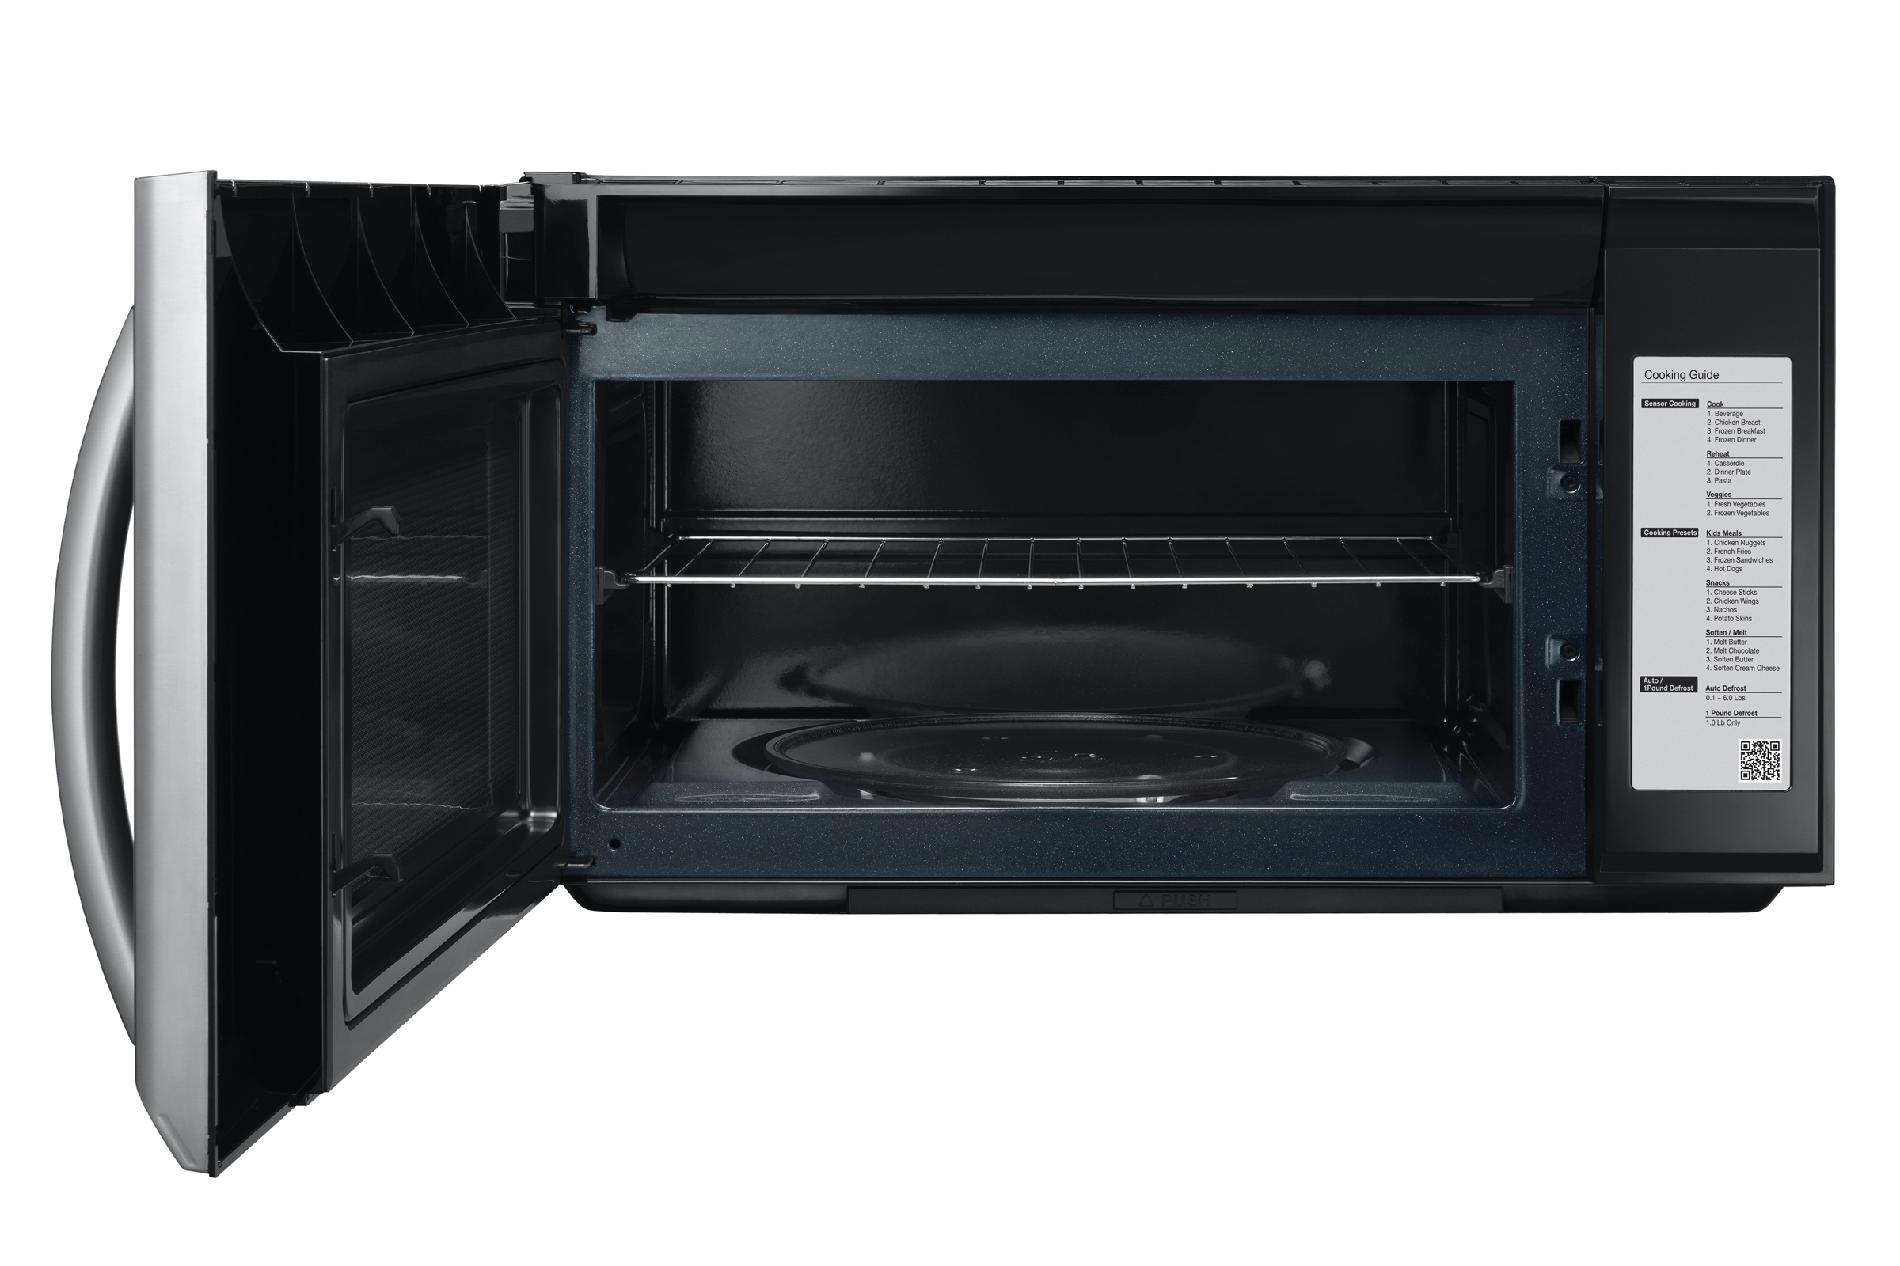 Samsung 2.1 cu. ft. Over-the-Range Microwave Oven - Stainless Steel